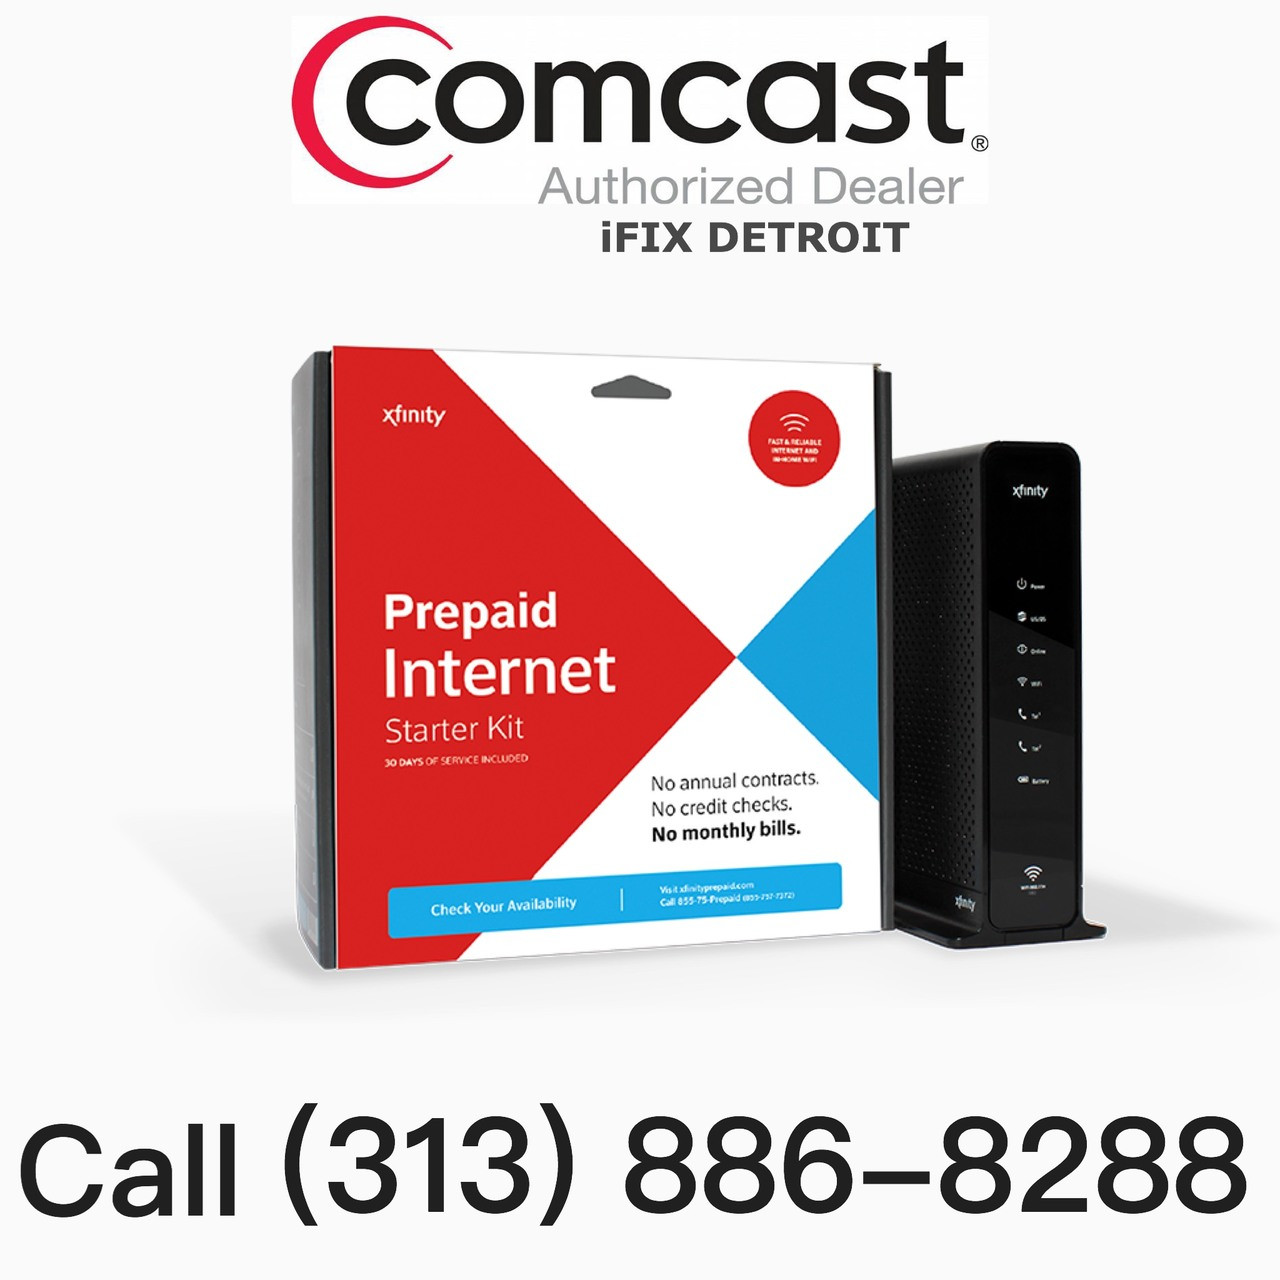 Comcast Quote Xfinity Internet Prepaid